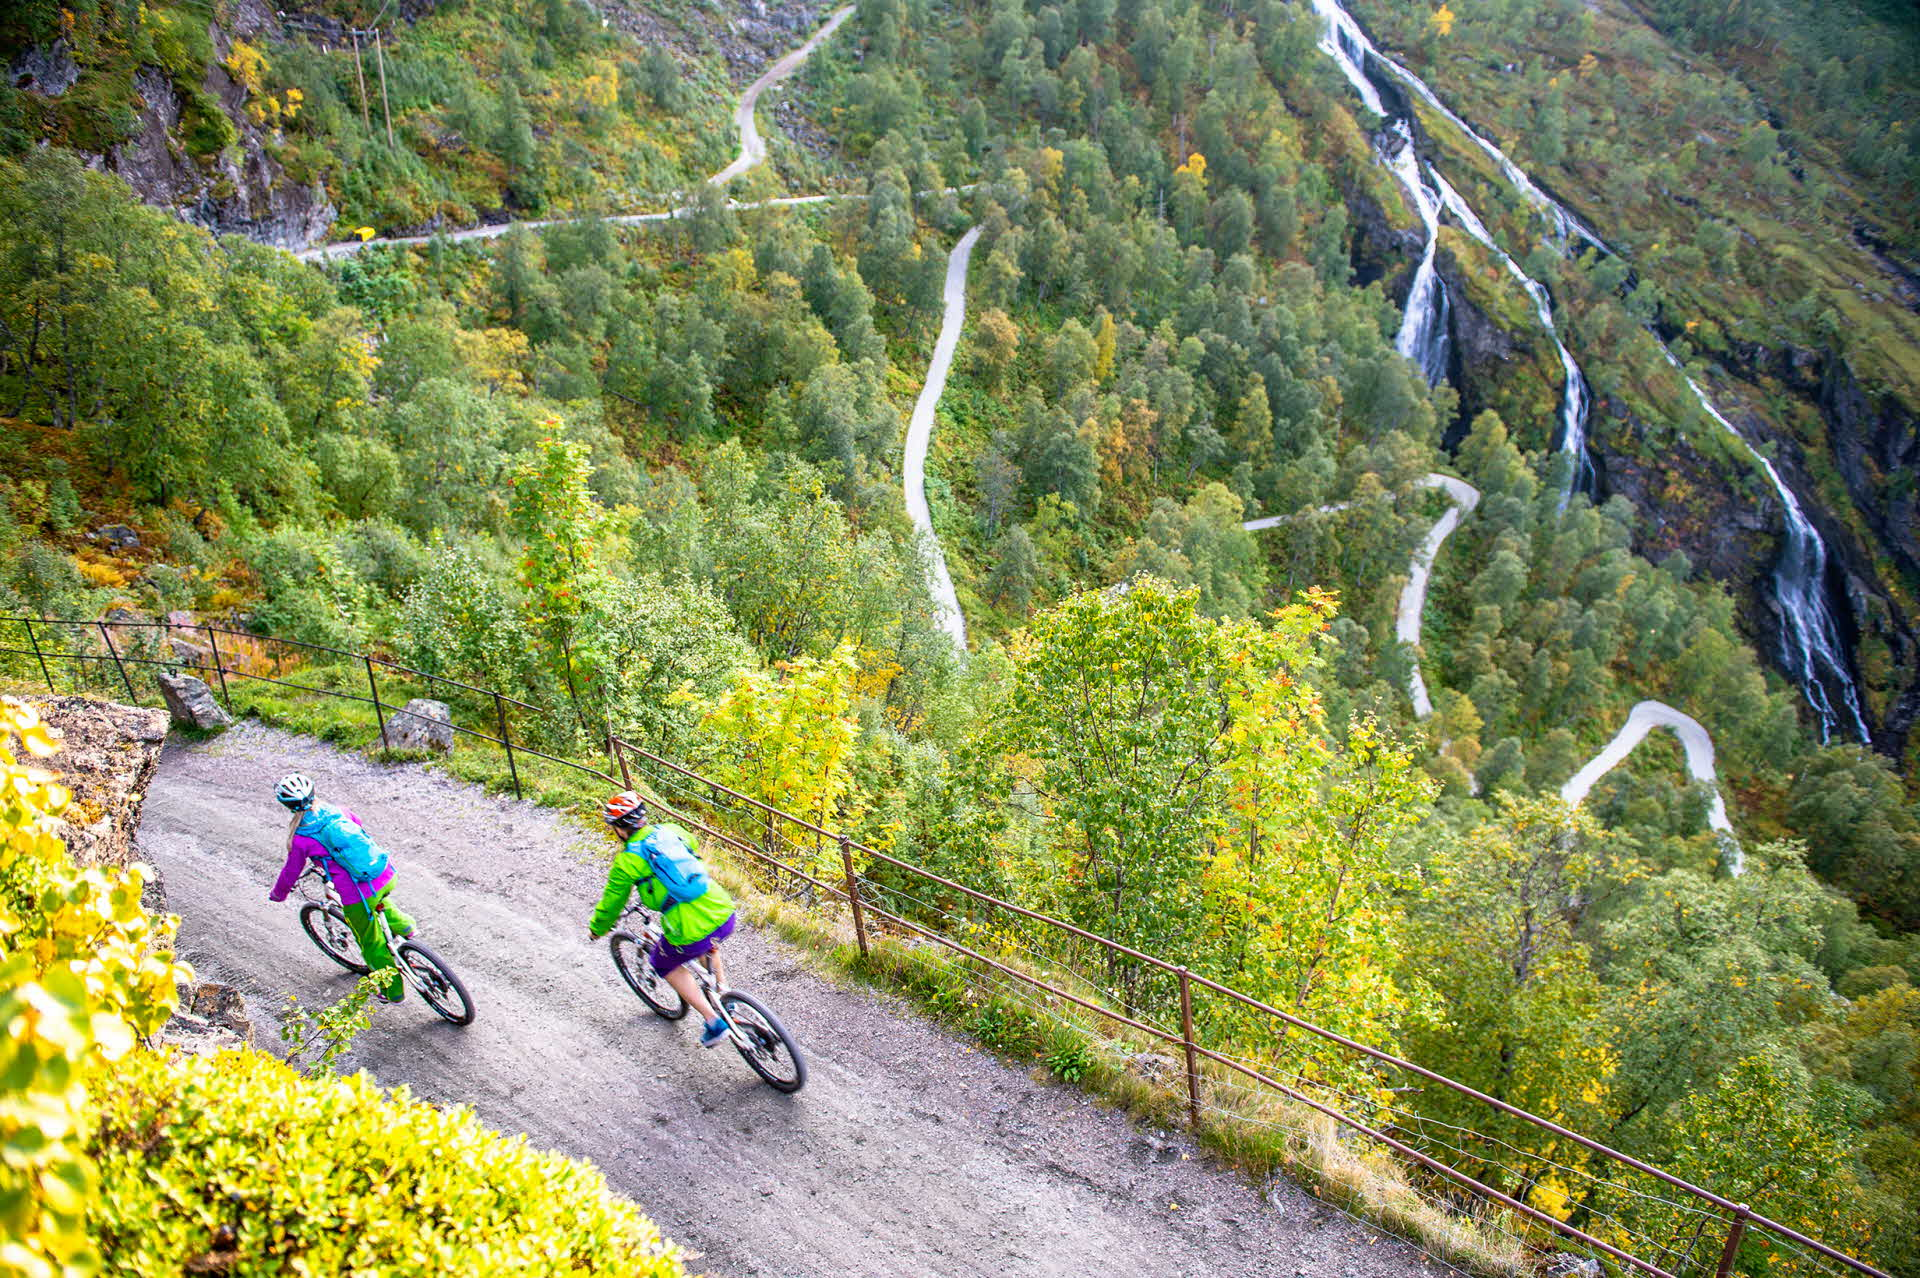 Two cyclists on their way down from Vatnahalsen towards Flåm